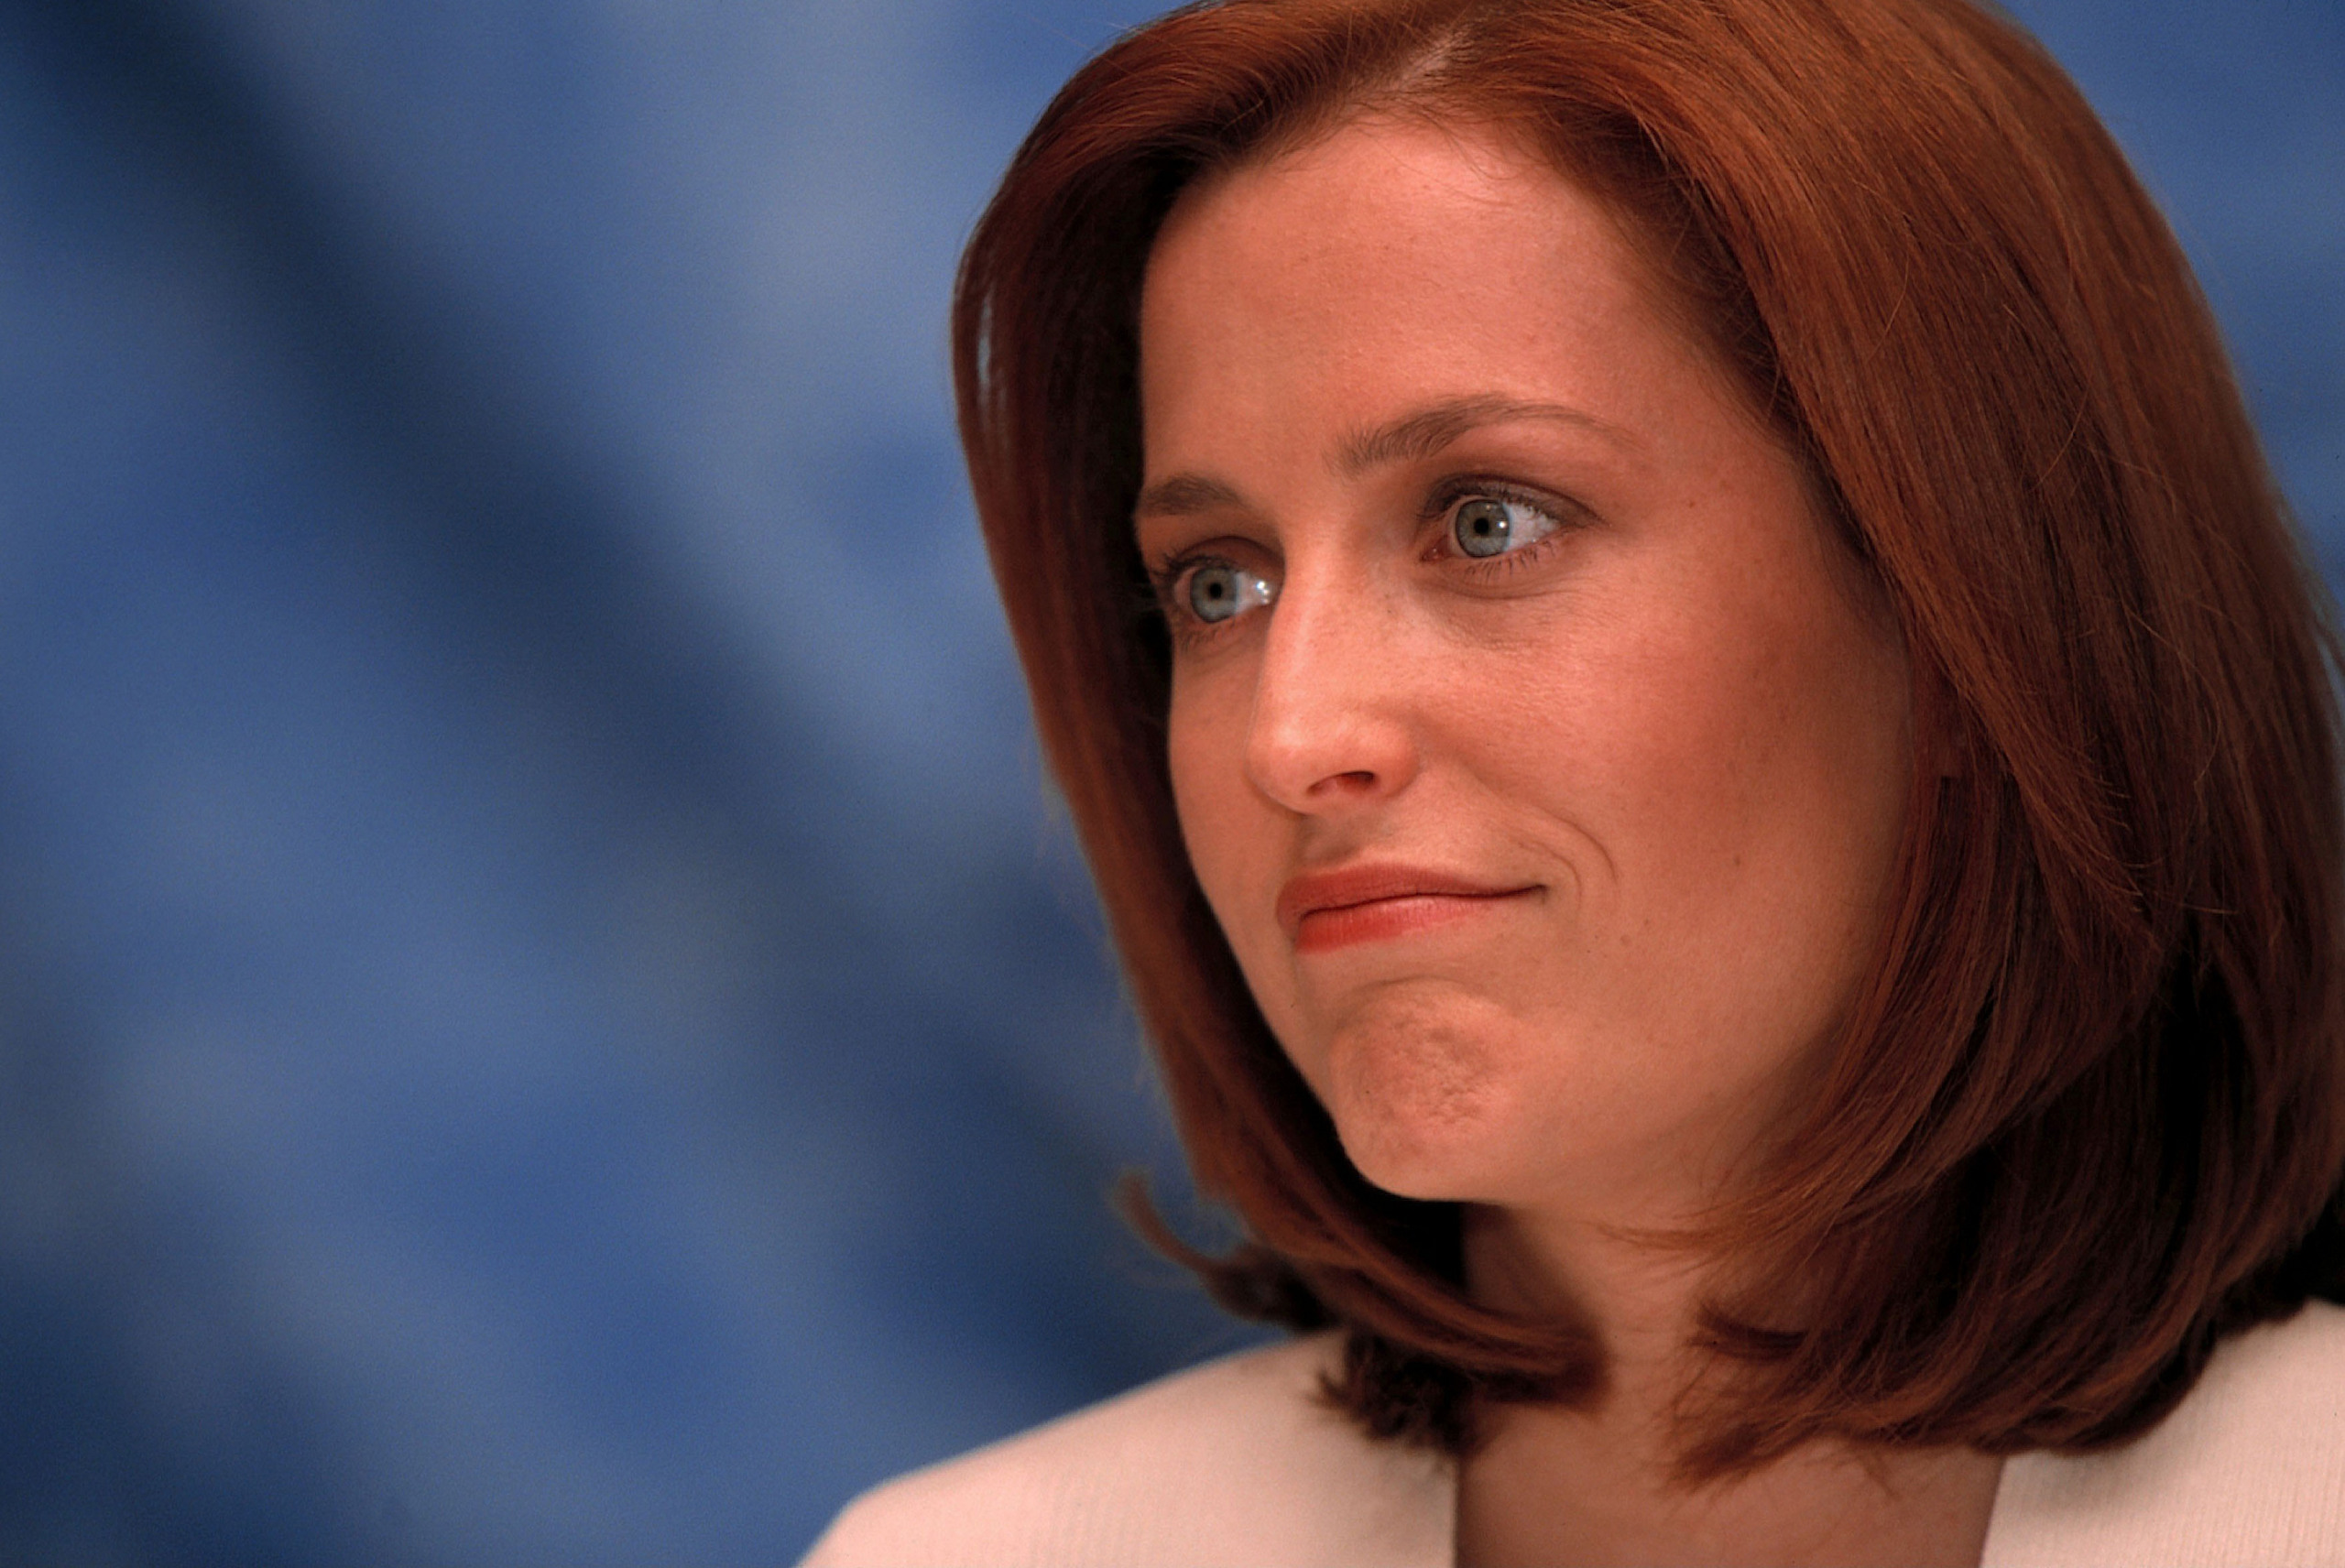 Scully the x files photo 23794043 fanpop